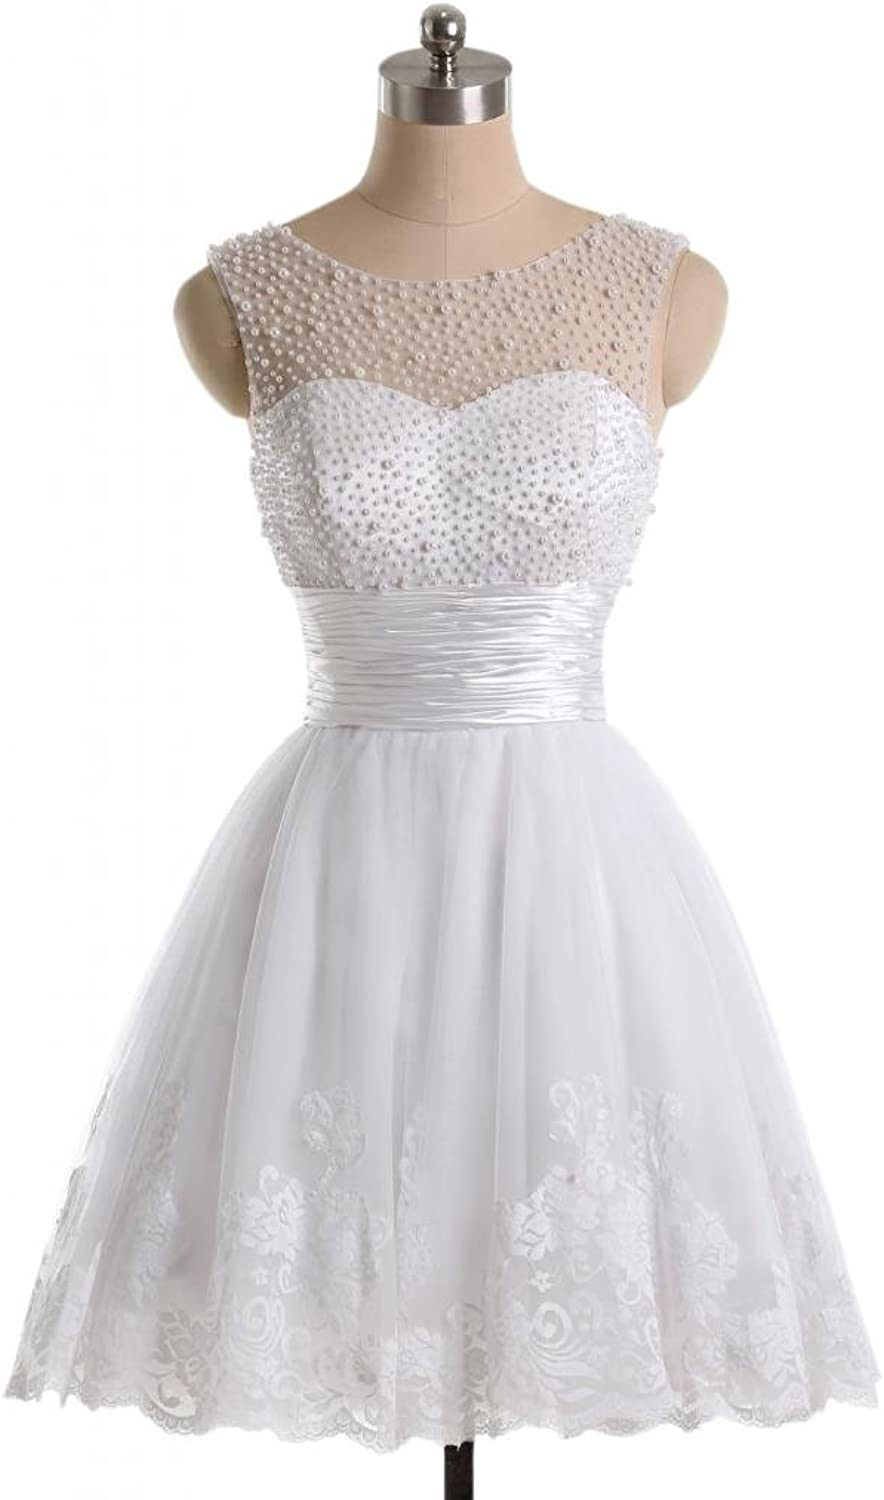 Angel Bride 2015 White Mini ALine Pearl Satin Tulle Lace Homecoming Birthday Dresses